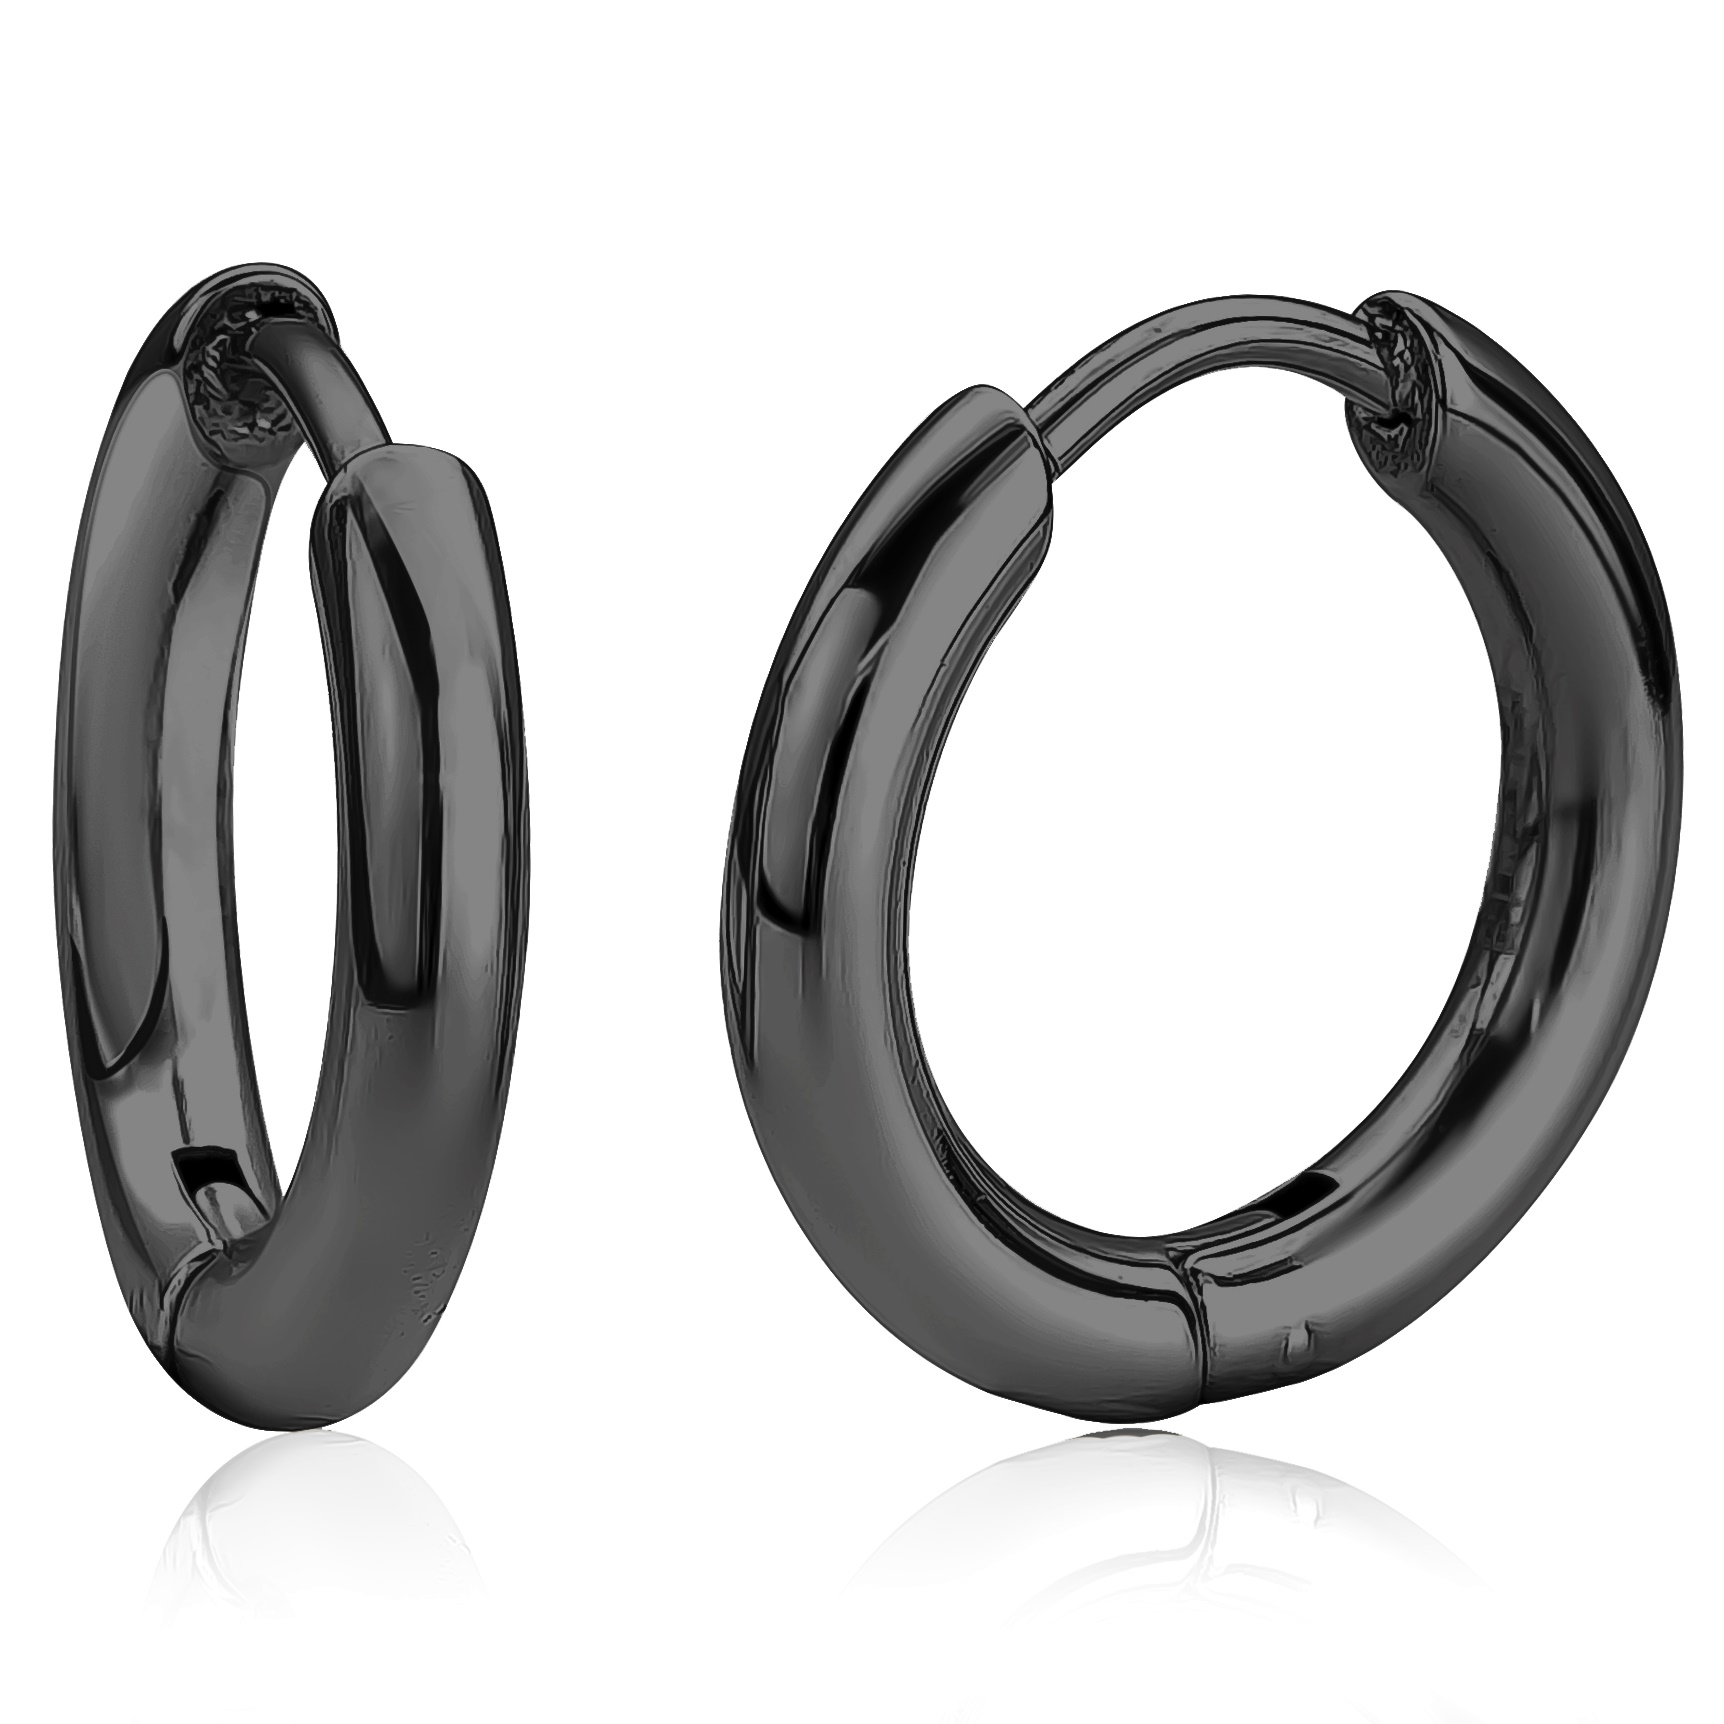 Huggies earrings for woman - Black stainless steel